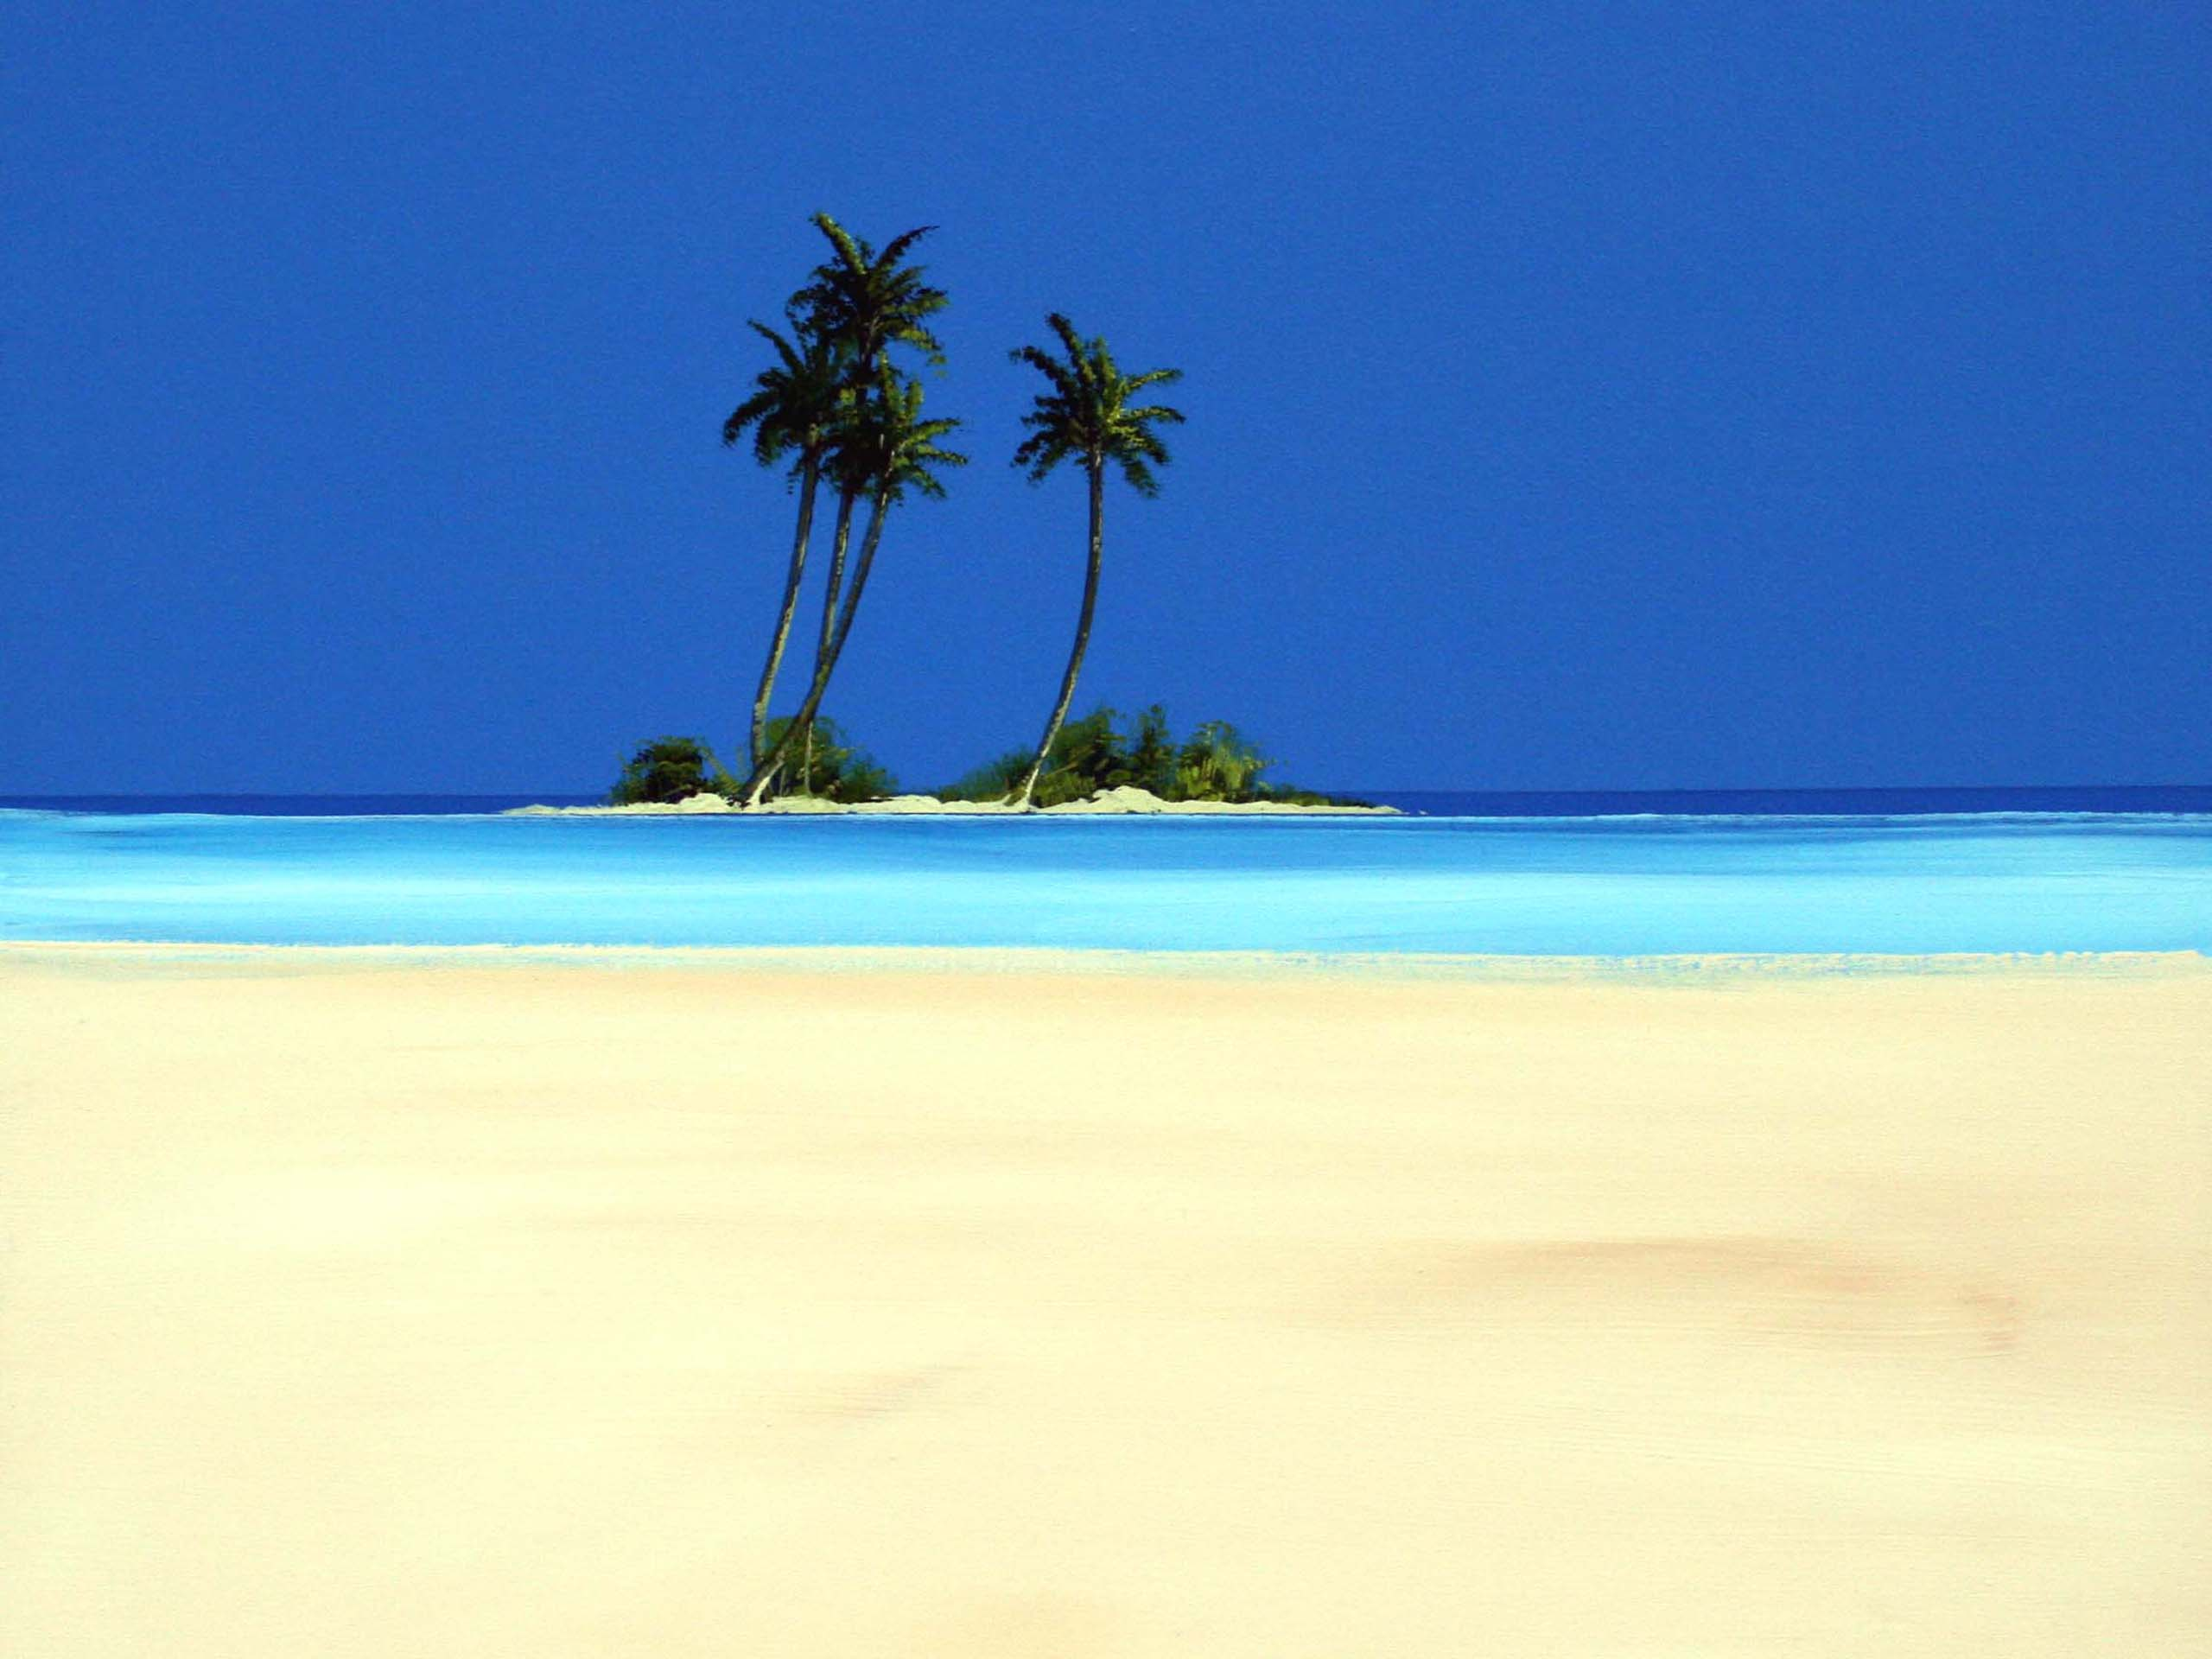 Beaches Desktop Wallpapers for HD Widescreen and 2560x1920